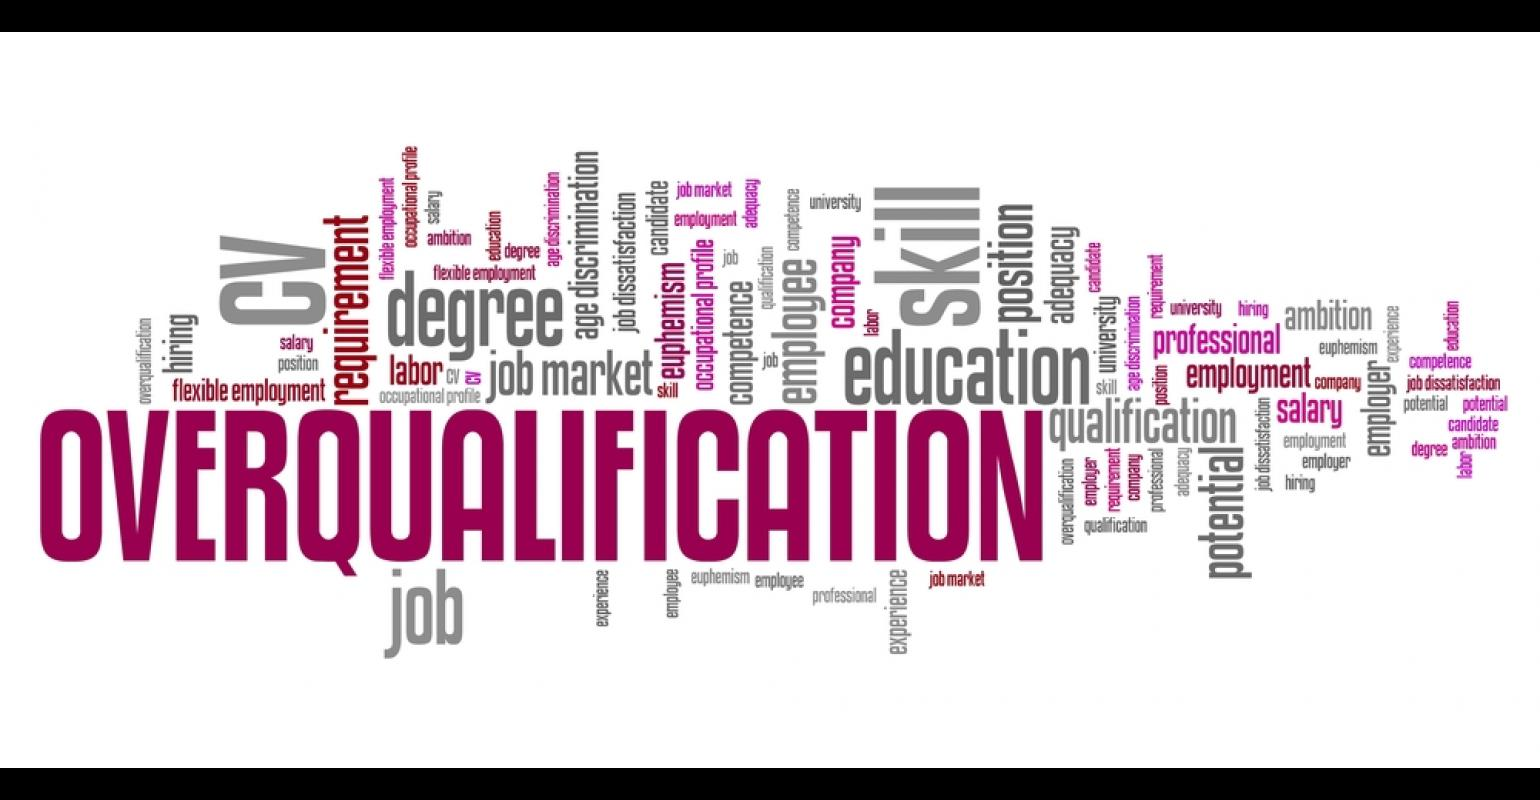 Overqualification - employment issues and concepts word cloud illustration